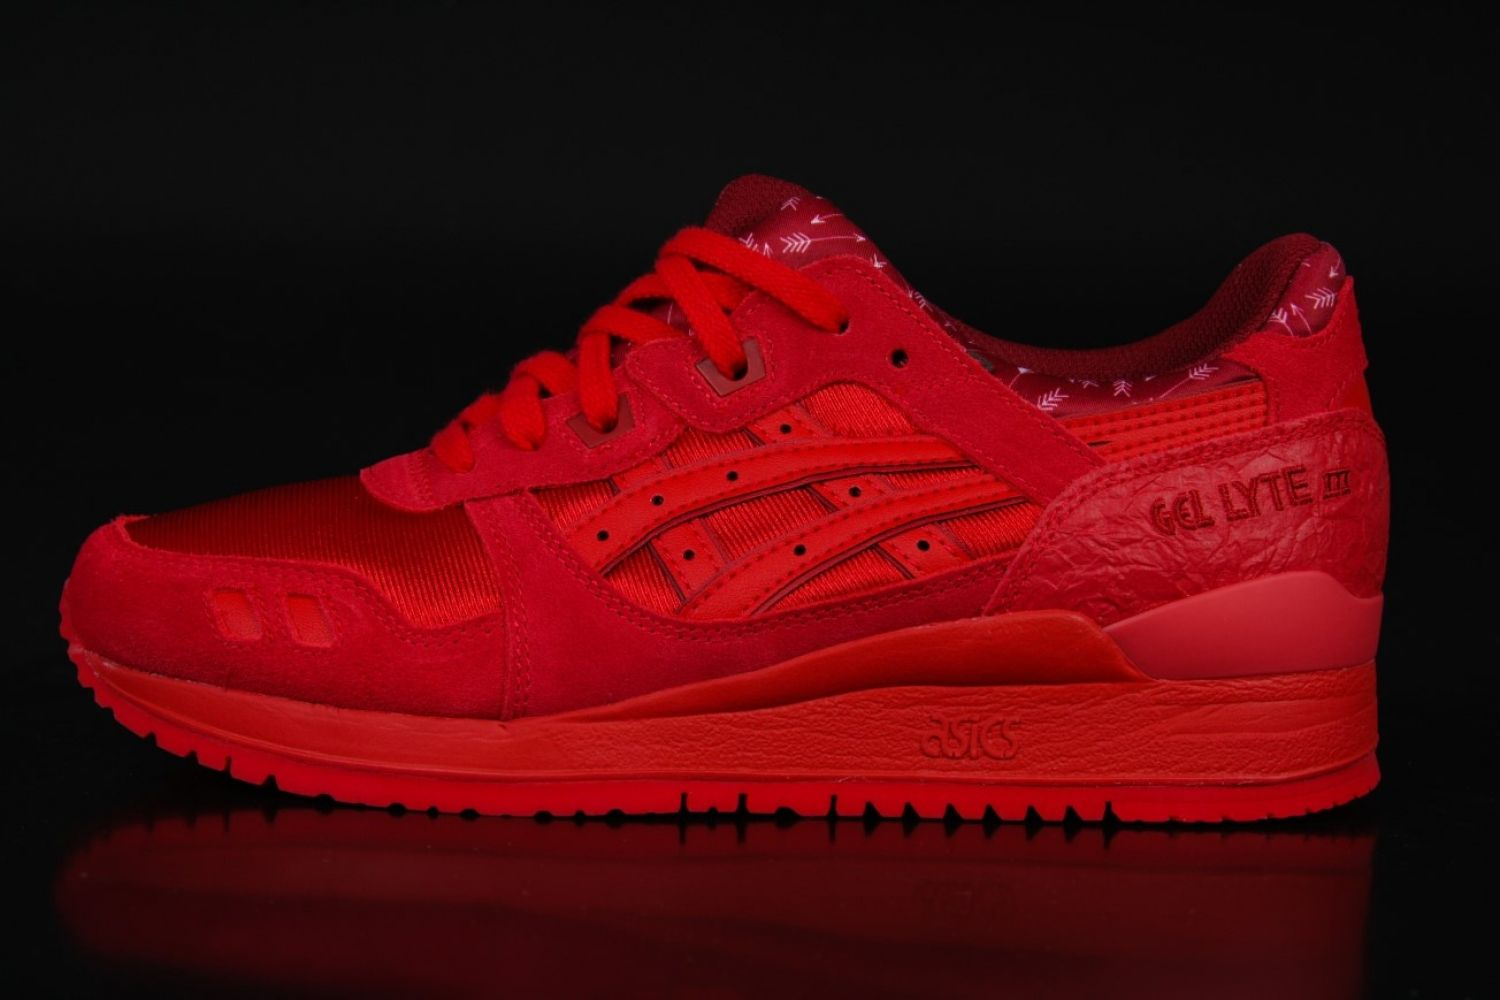 Asics - Asics Gel-Lyte III Cupid Valentines Pack All Red Sneakers H63QQ  2323 -